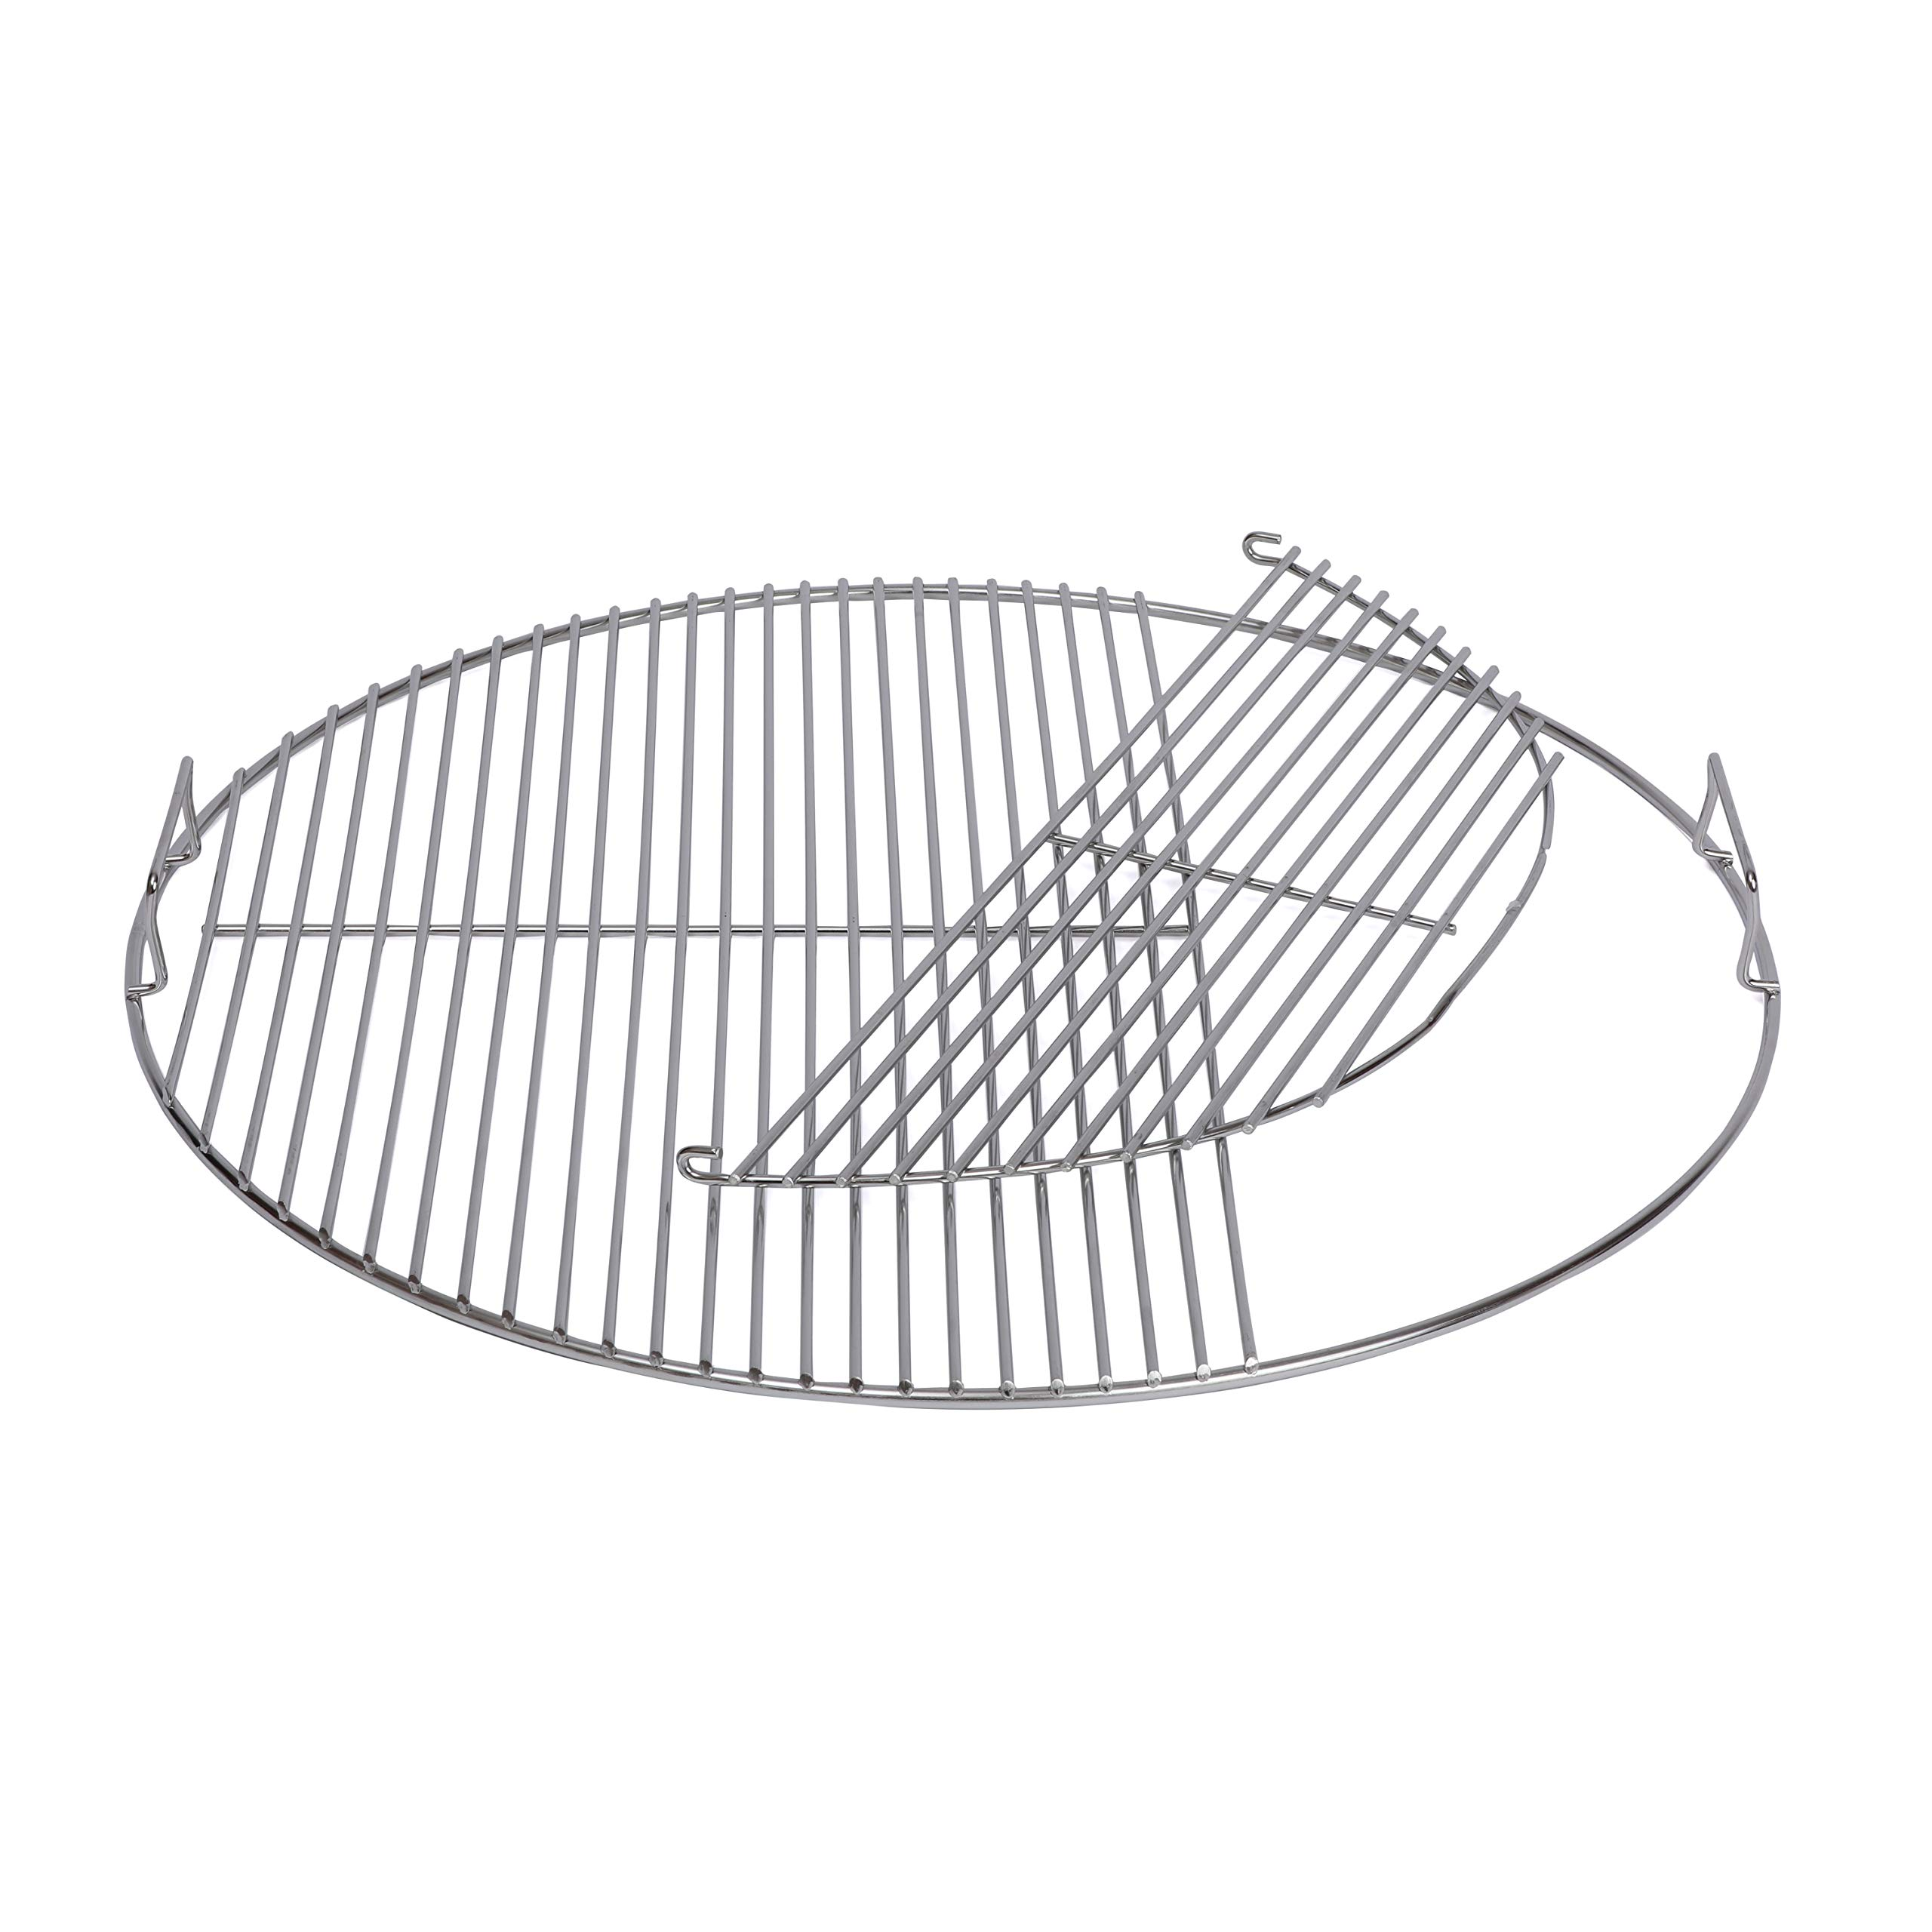 Adrenaline Barbecue Company 22'' Stainless Steel Replacement Charcoal Cooking Grate